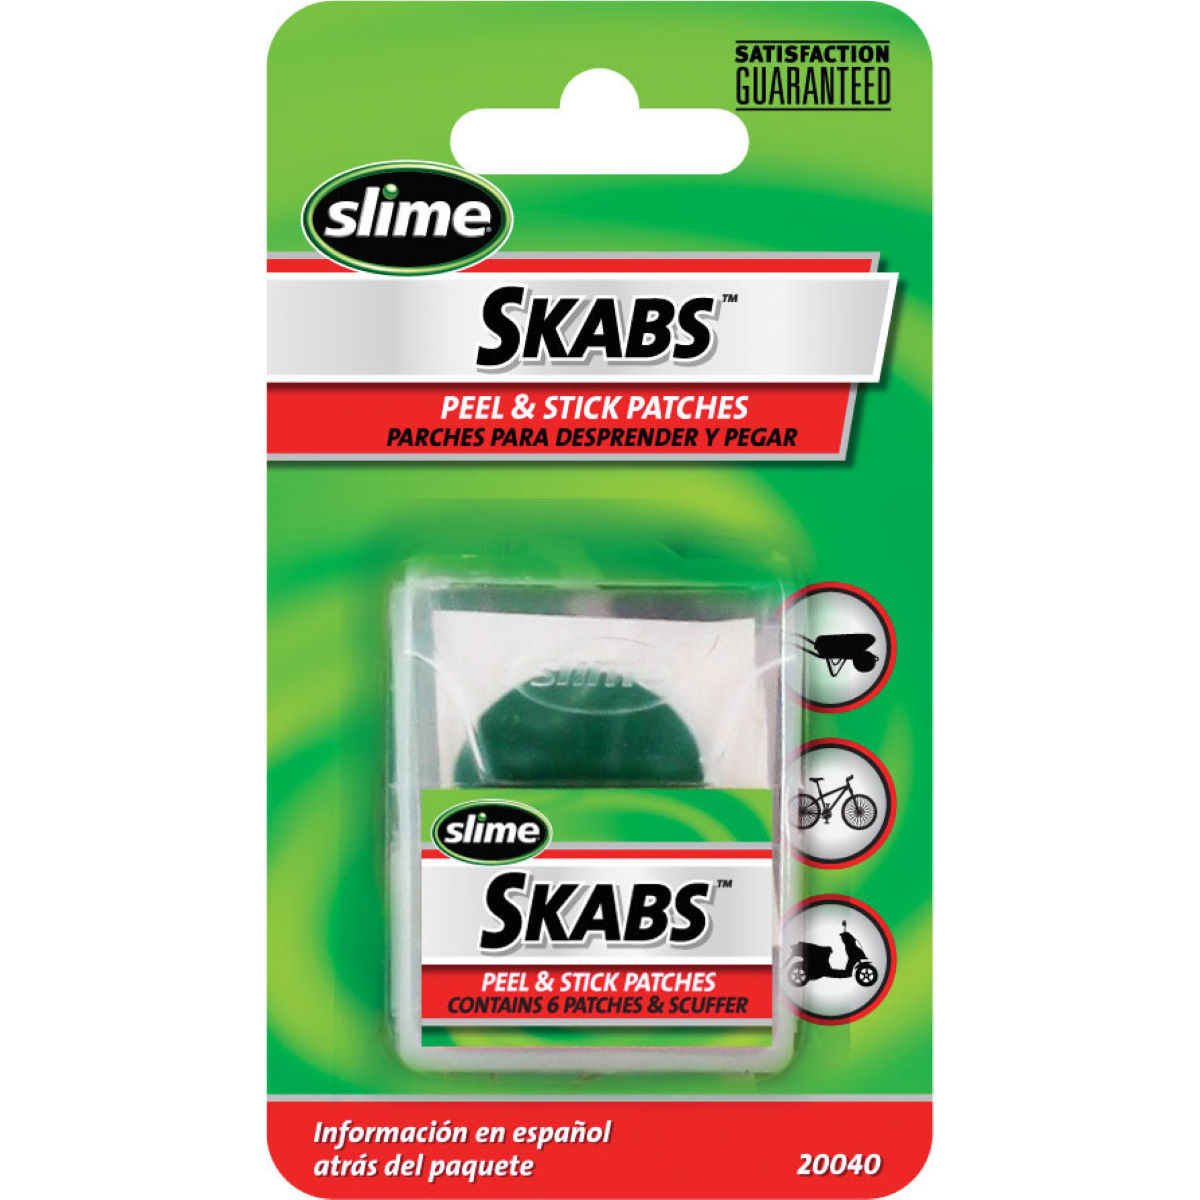 Slime Skabs Puncture Repair Patches   Tool Sets